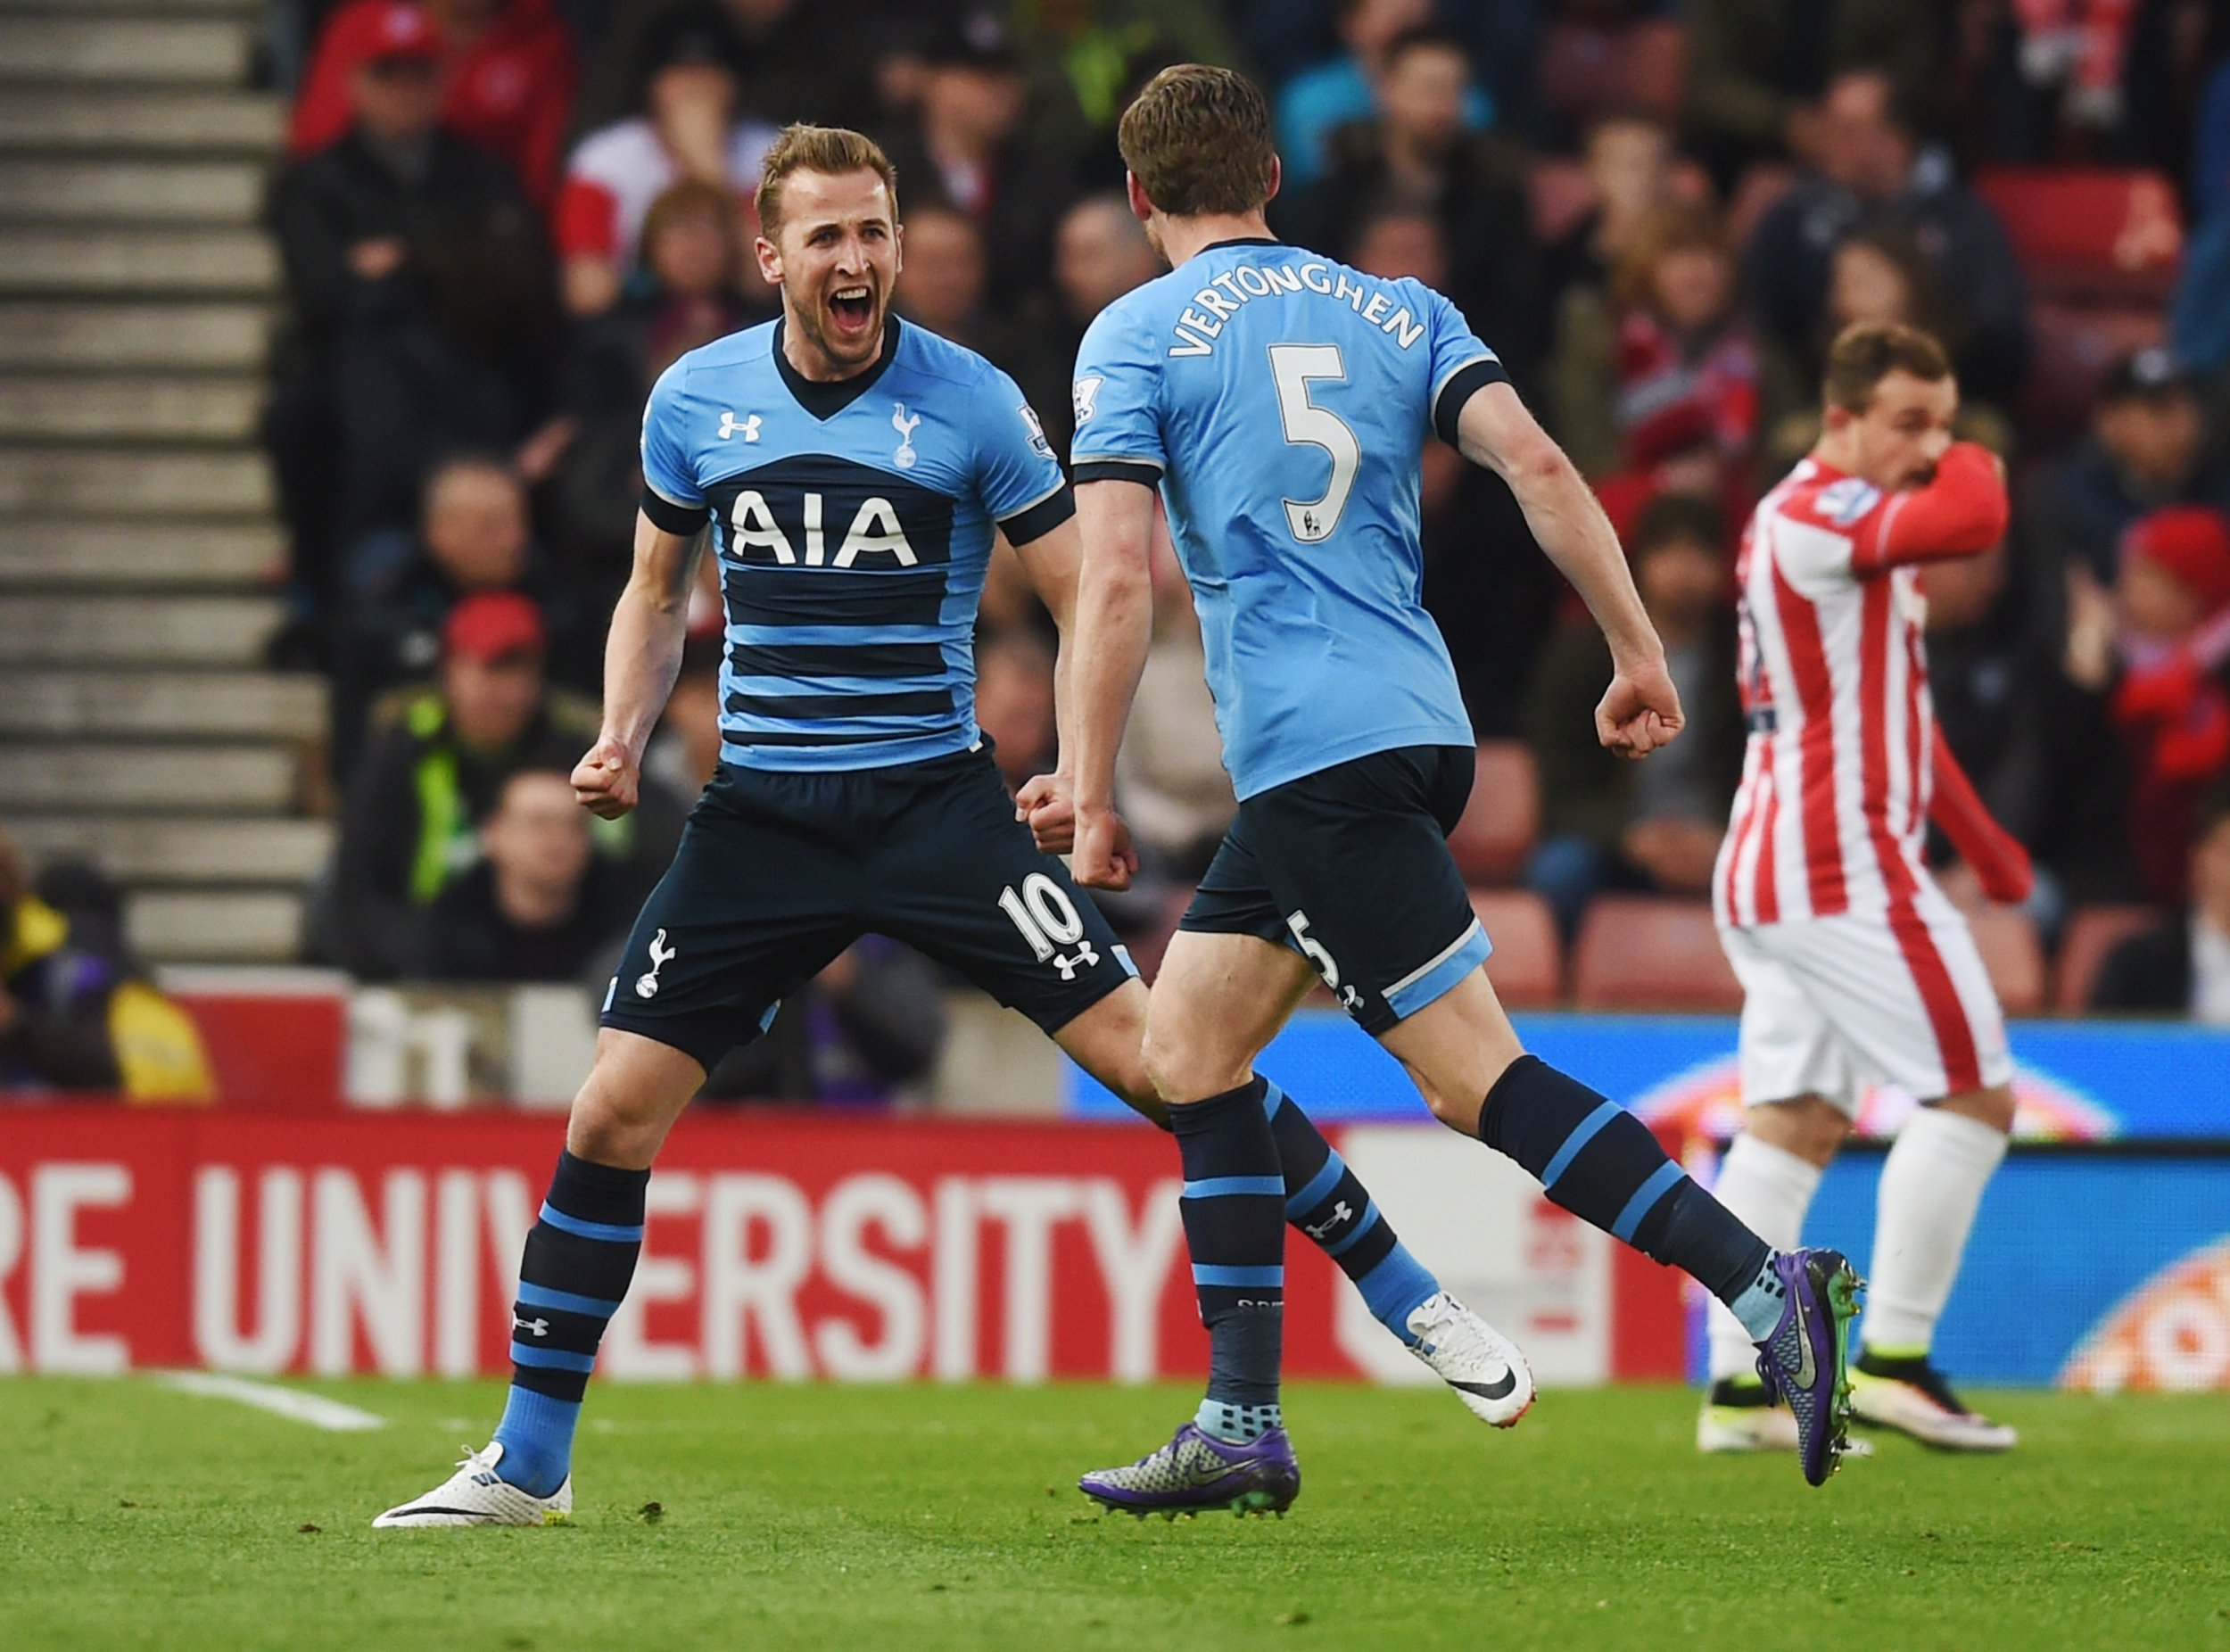 Harry Kane could shoot Tottenham to a first league title since 1961.